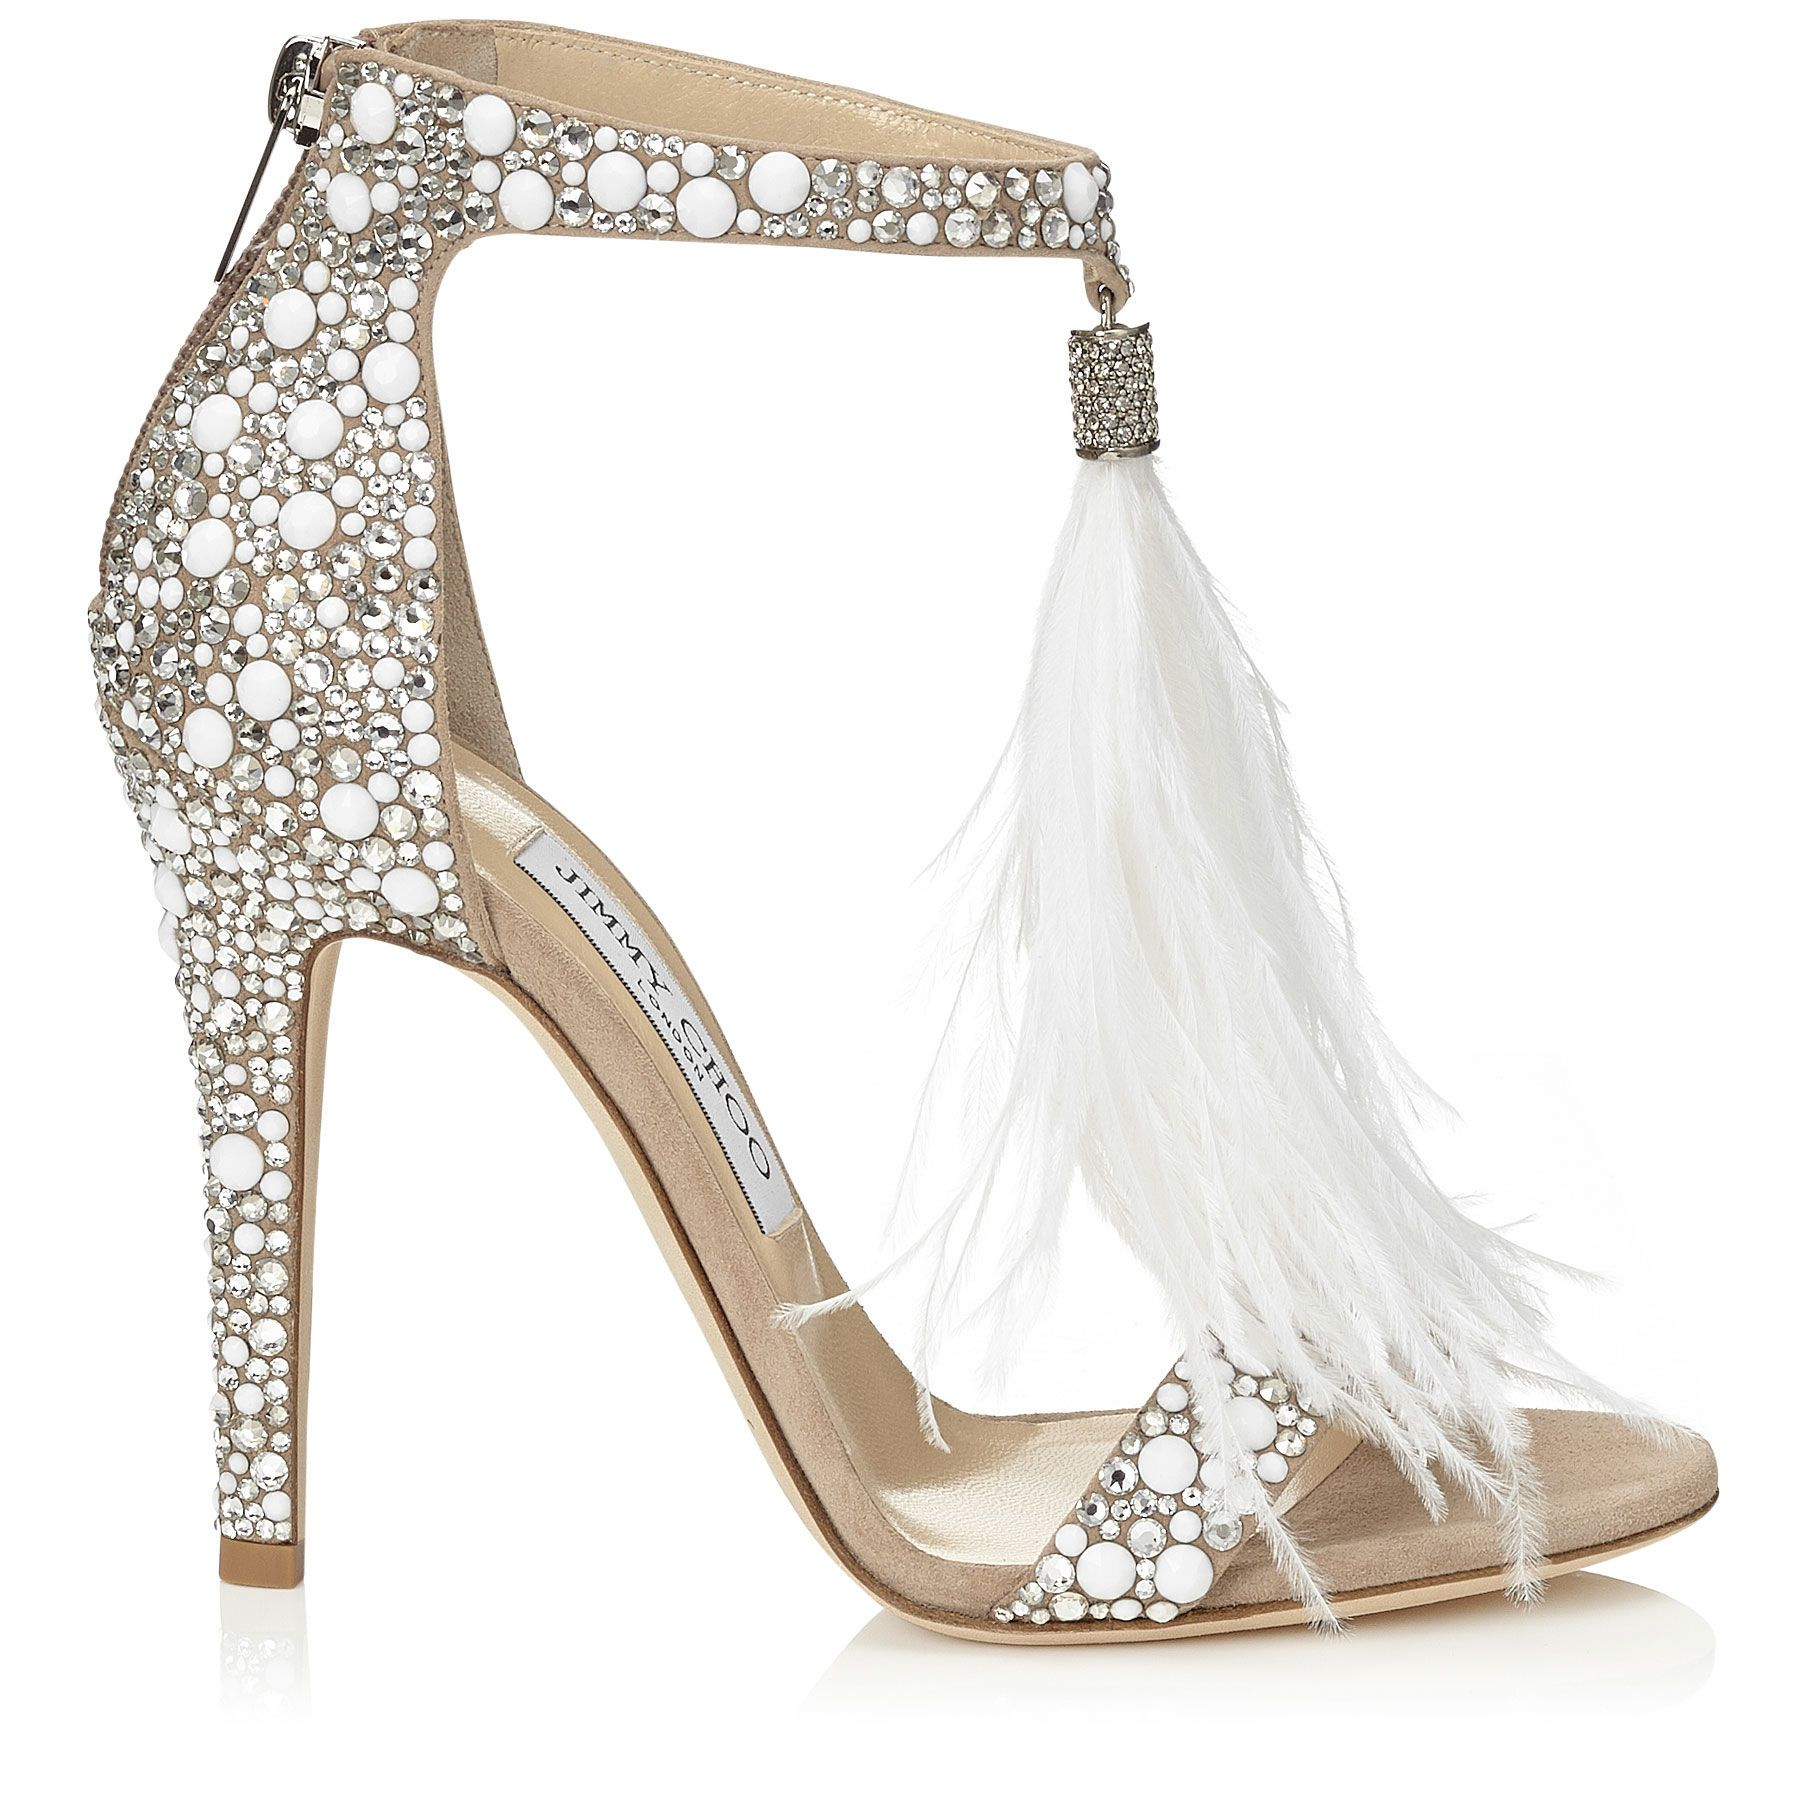 3bbe0048126 The Jimmy Choo VIOLA sandal with delicate white feather tassel and crystal  embellishment